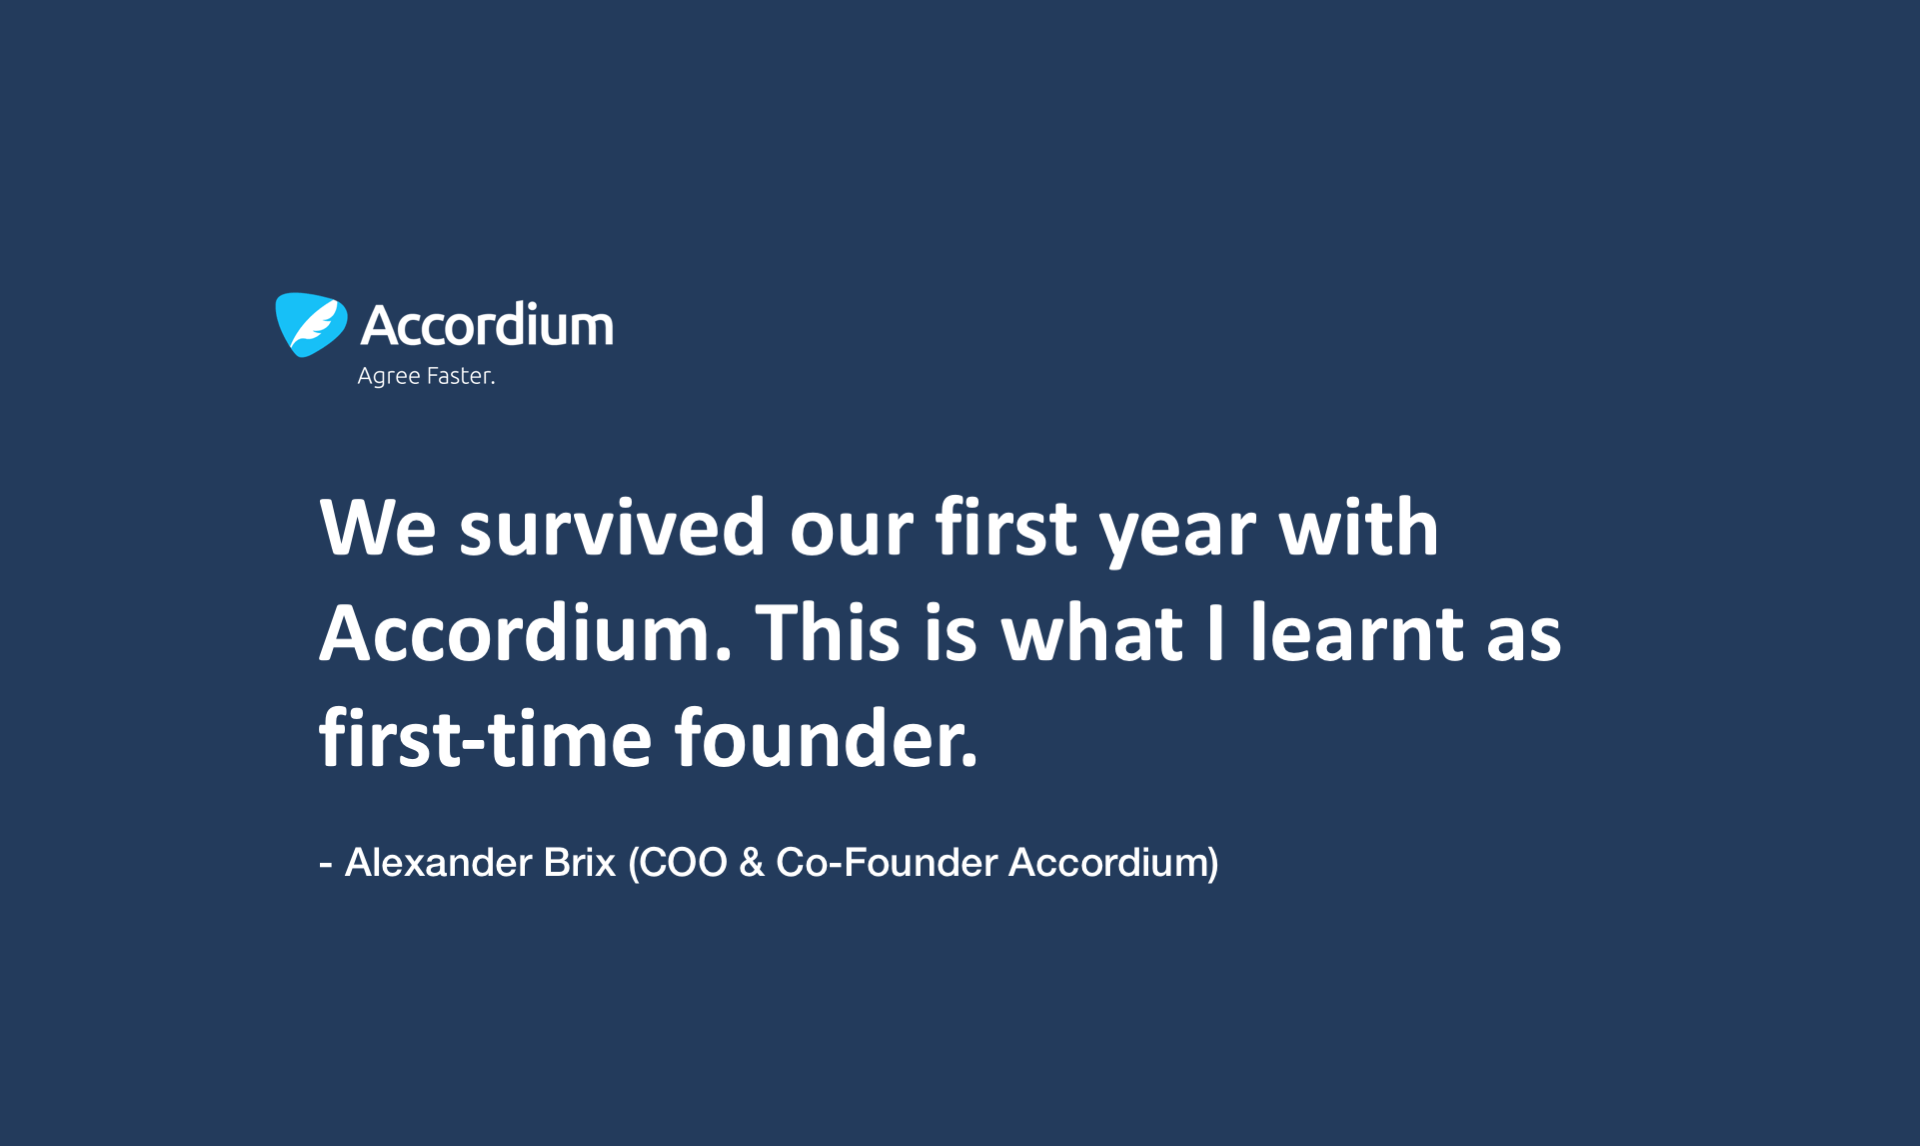 We survived our first year with Accordium by Alexander Brix